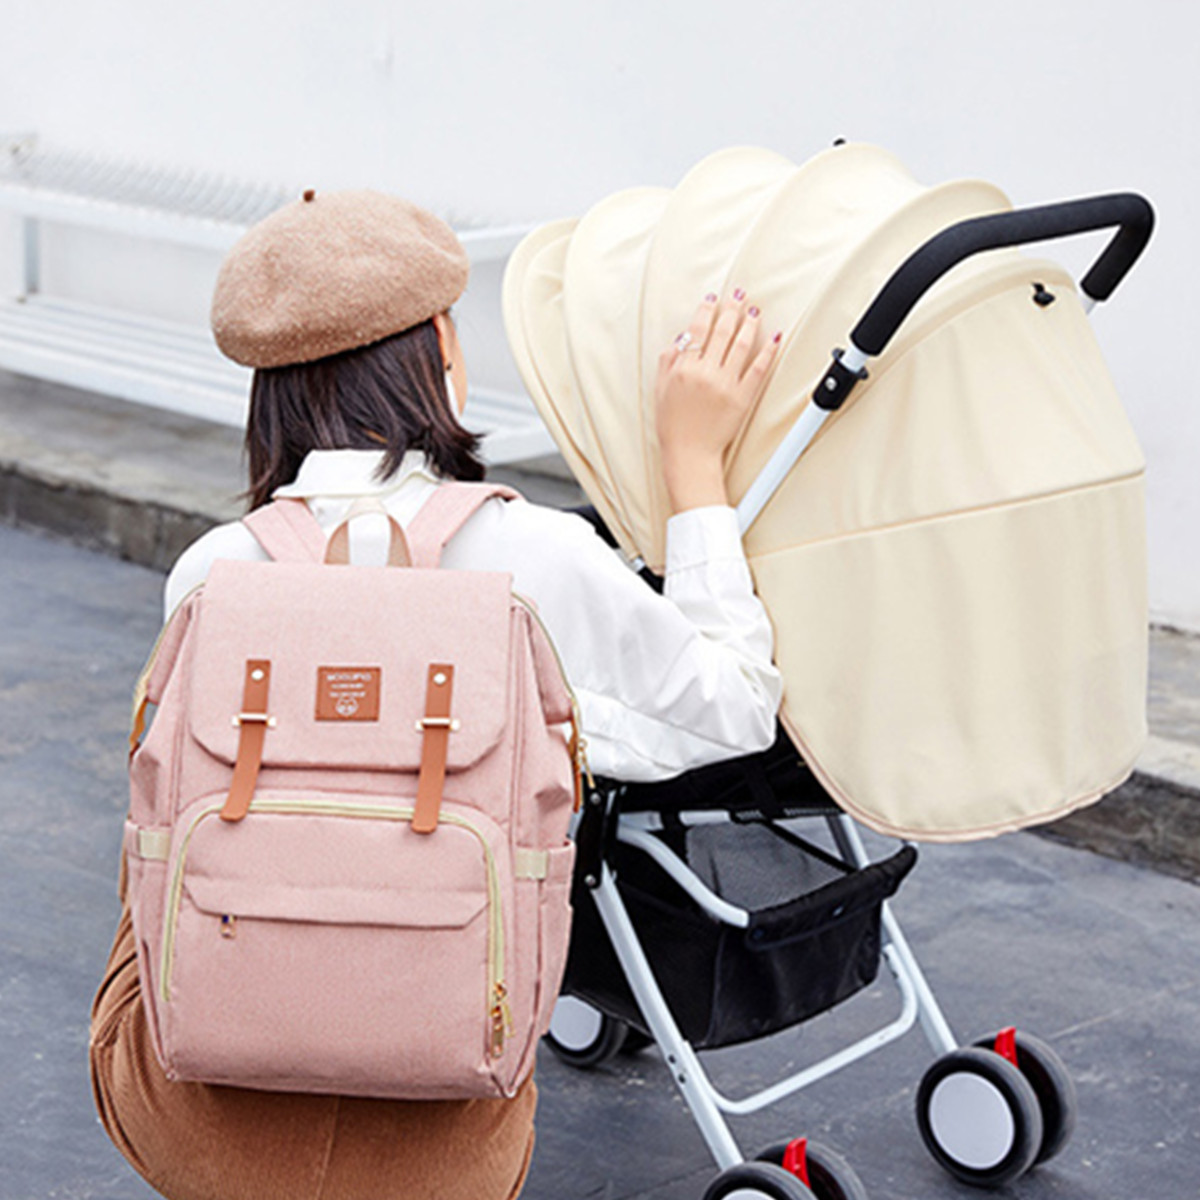 21L USB Mummy Backpack Waterproof Baby Nappy Diaper Bag Shoulder Handbag Outdoor Travel